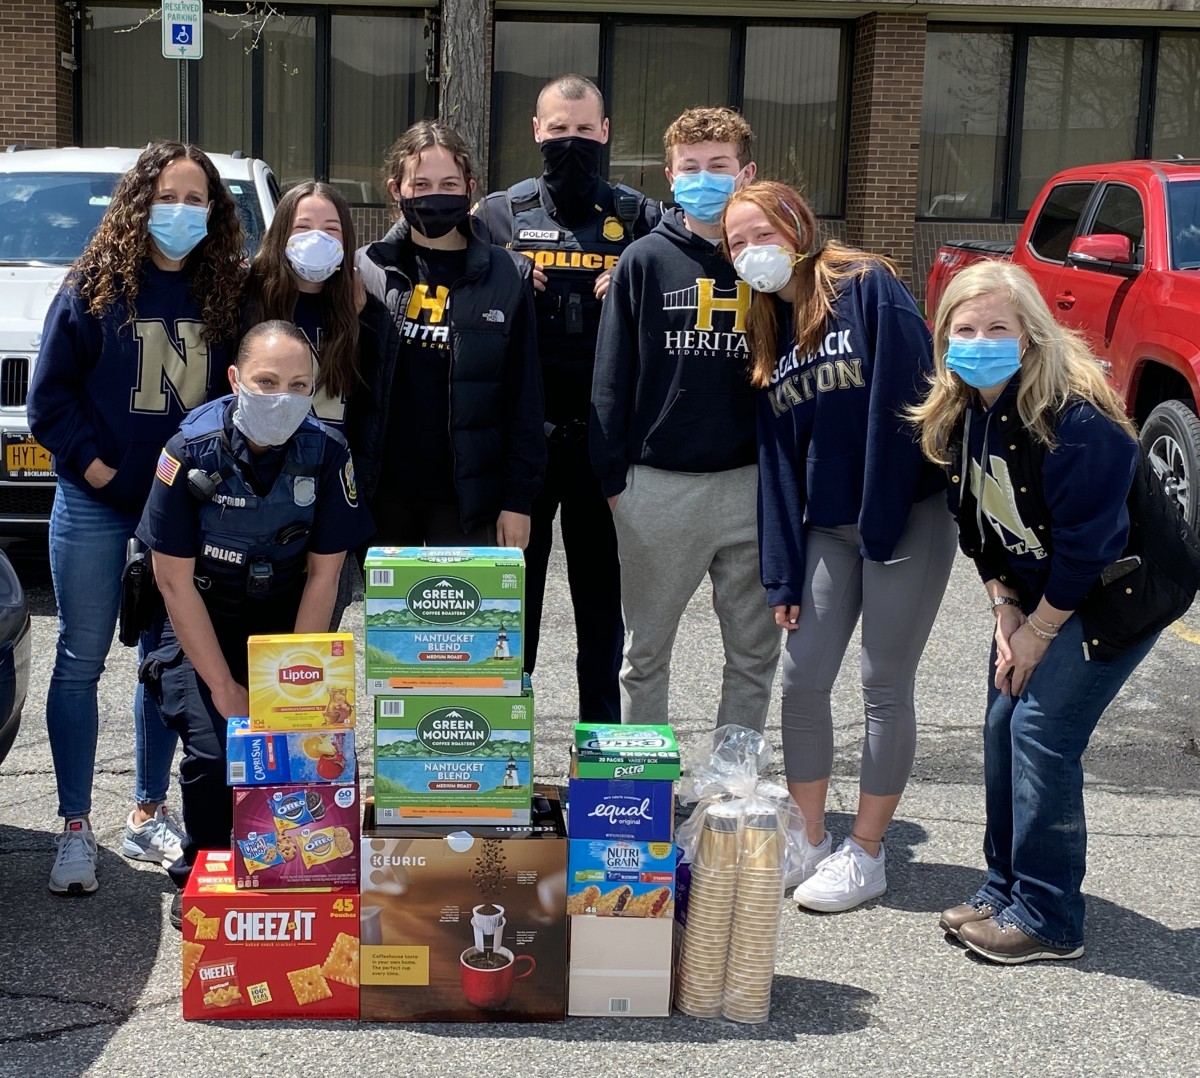 Heritage Middle School volunteers and a police officer pose with donated items.